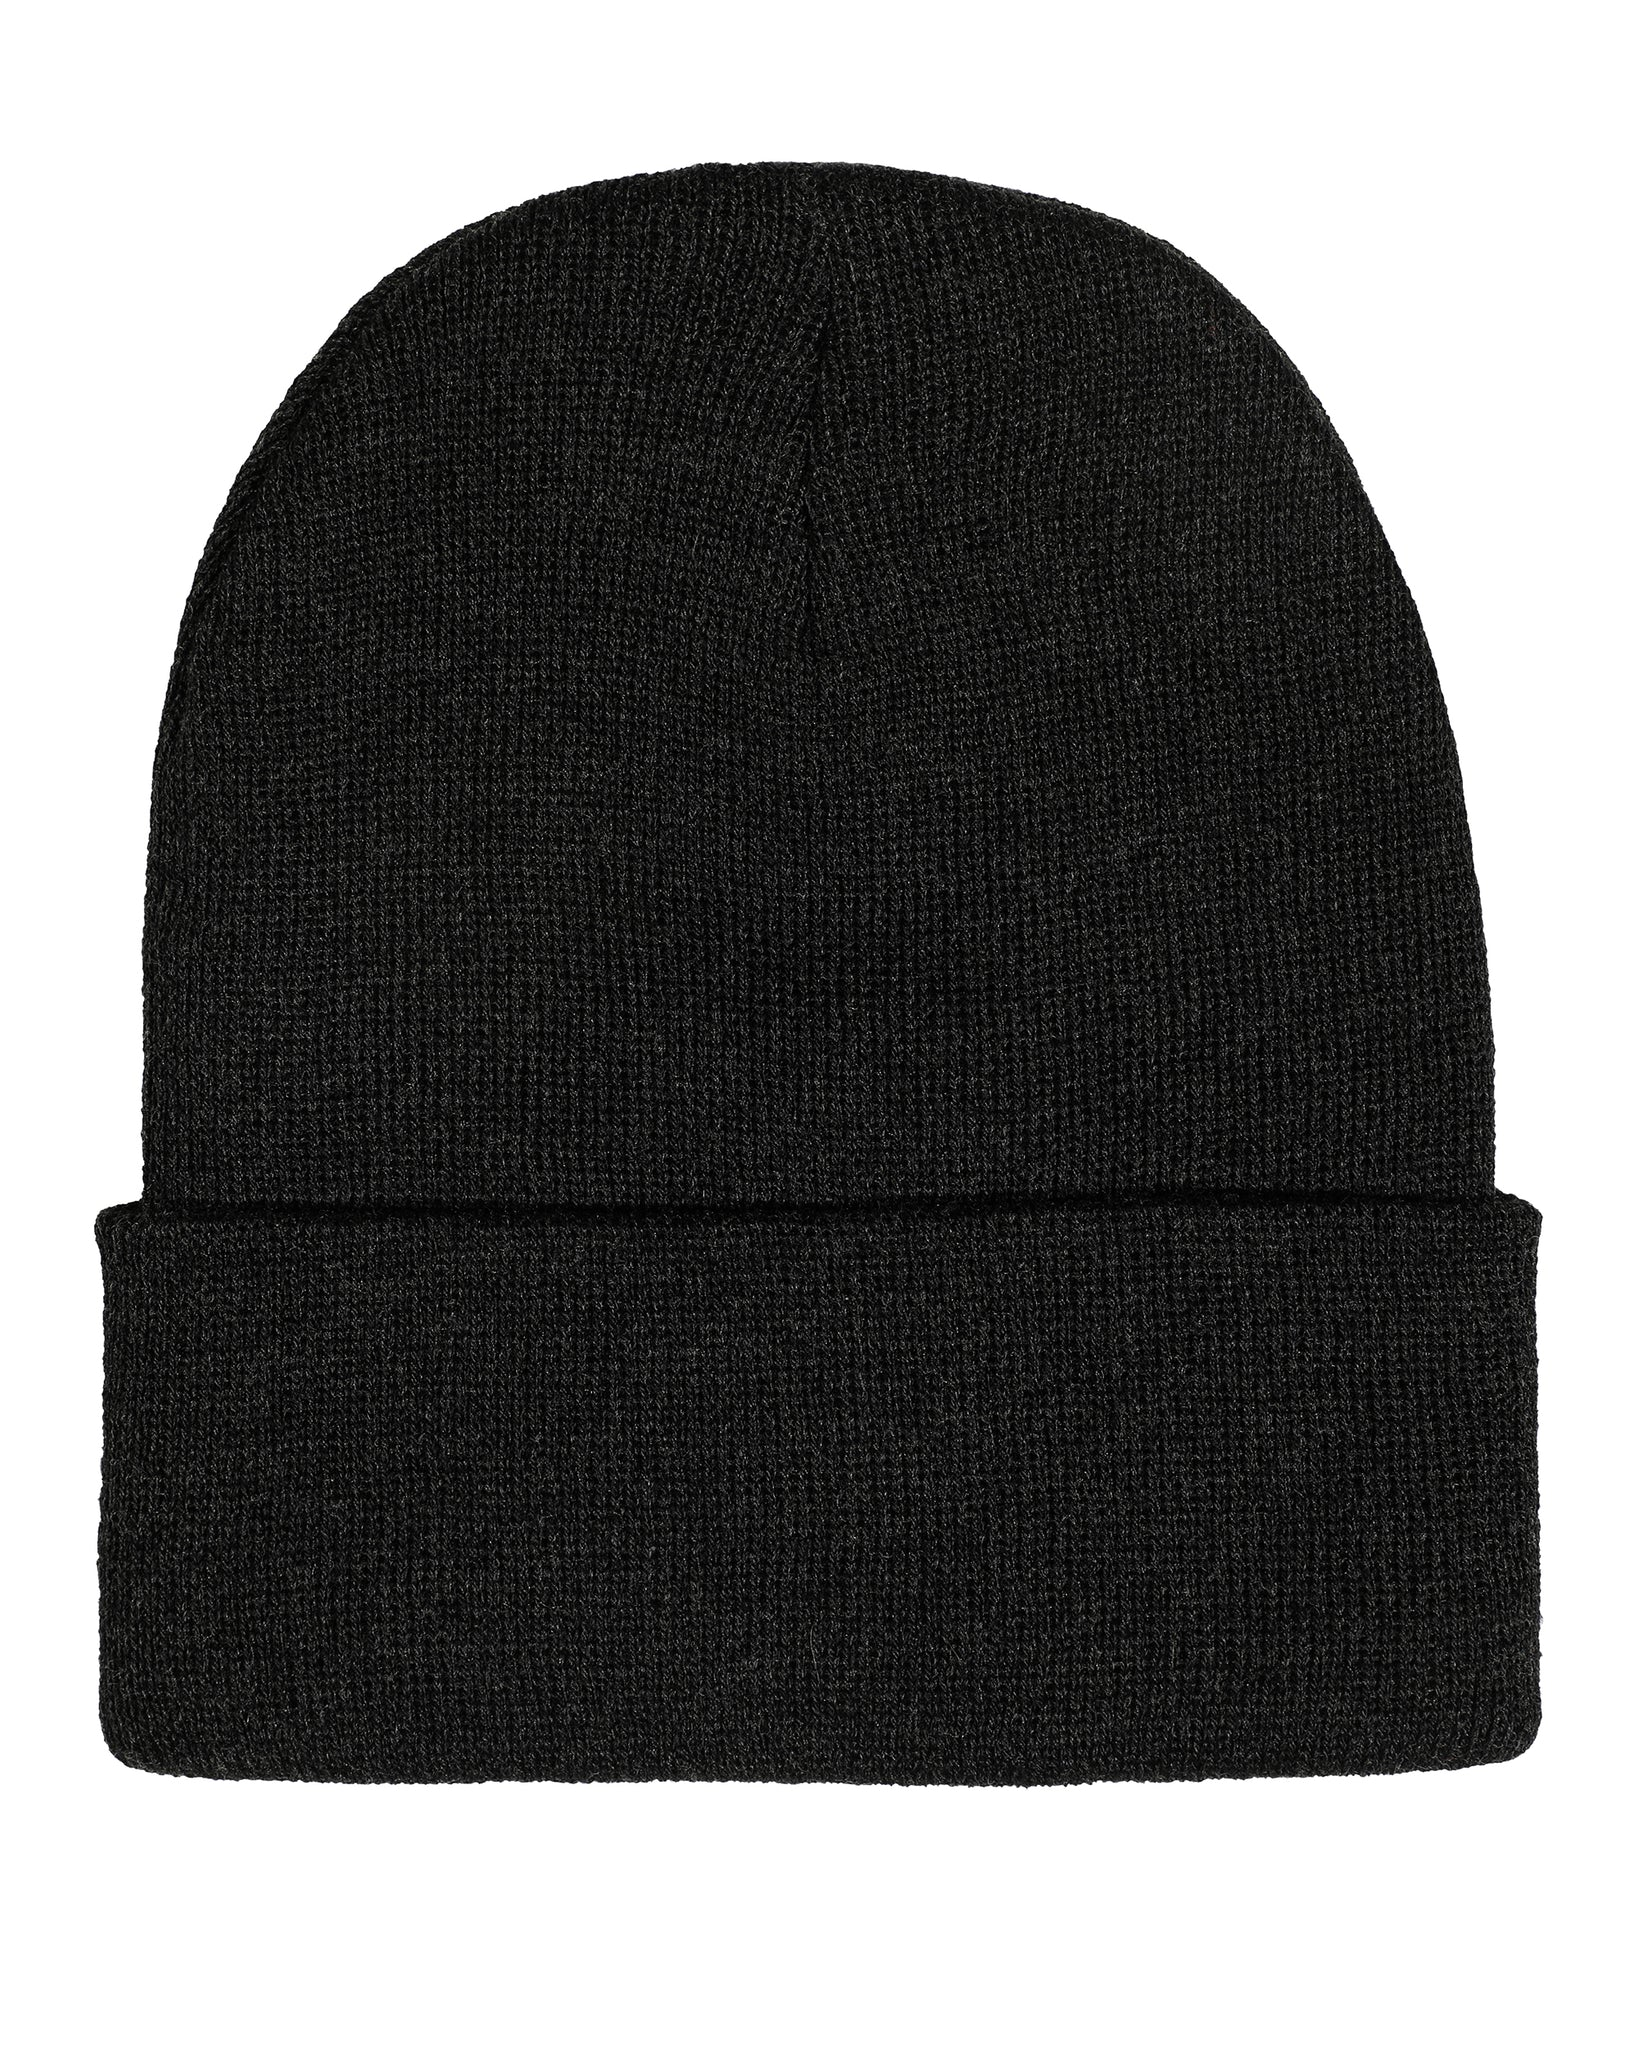 BOYS LIE HEATHER CHARCOAL BEANIE